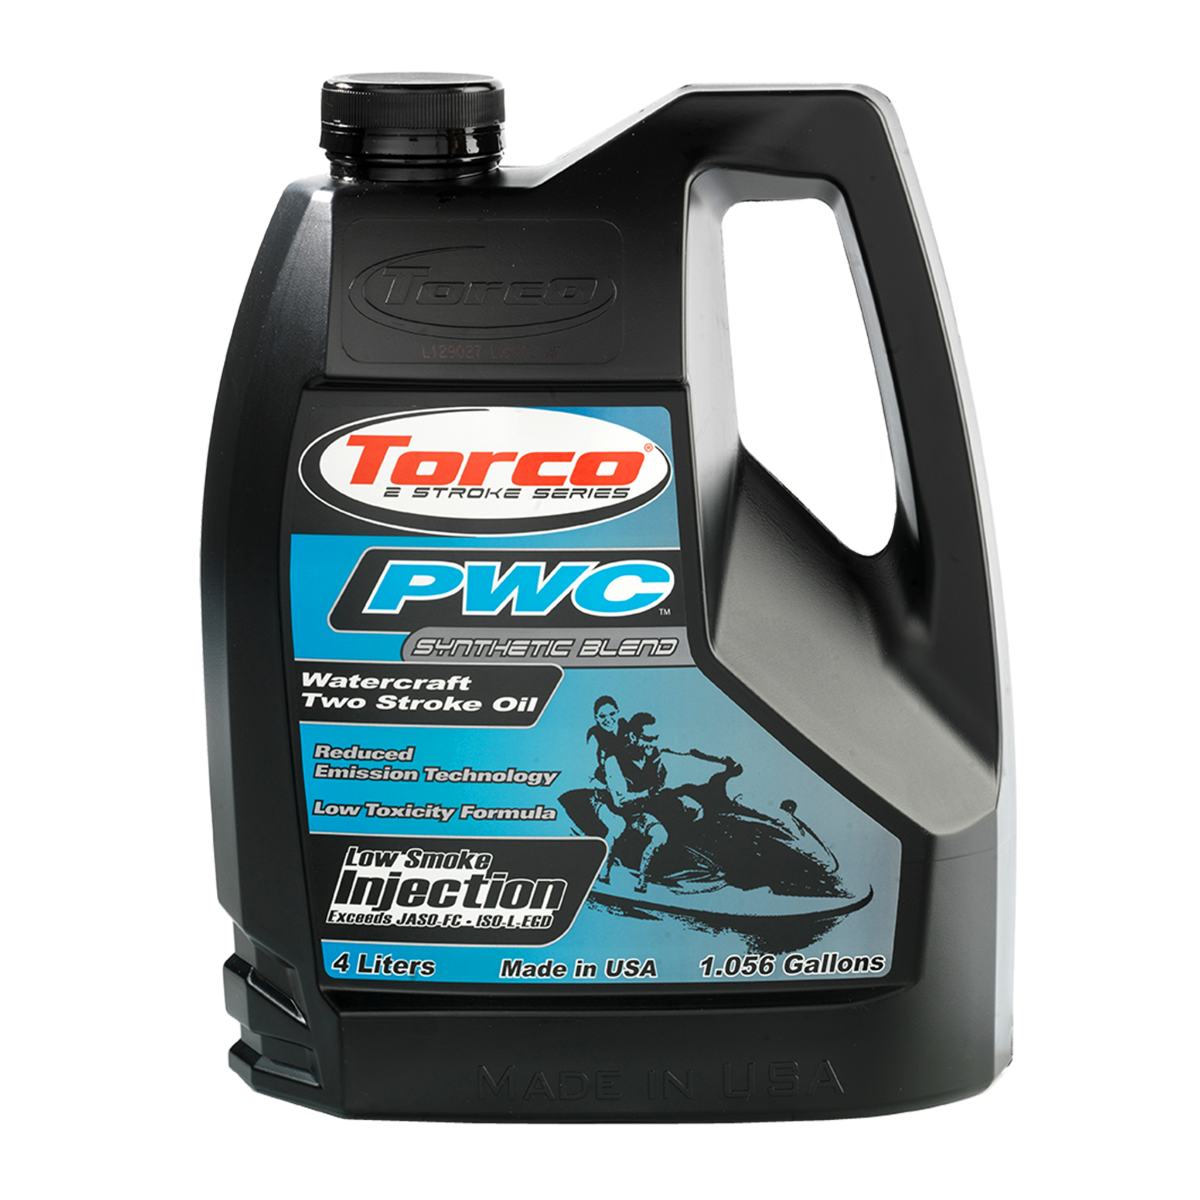 PWC 2-Stroke Injection Oil - TorcoUSA